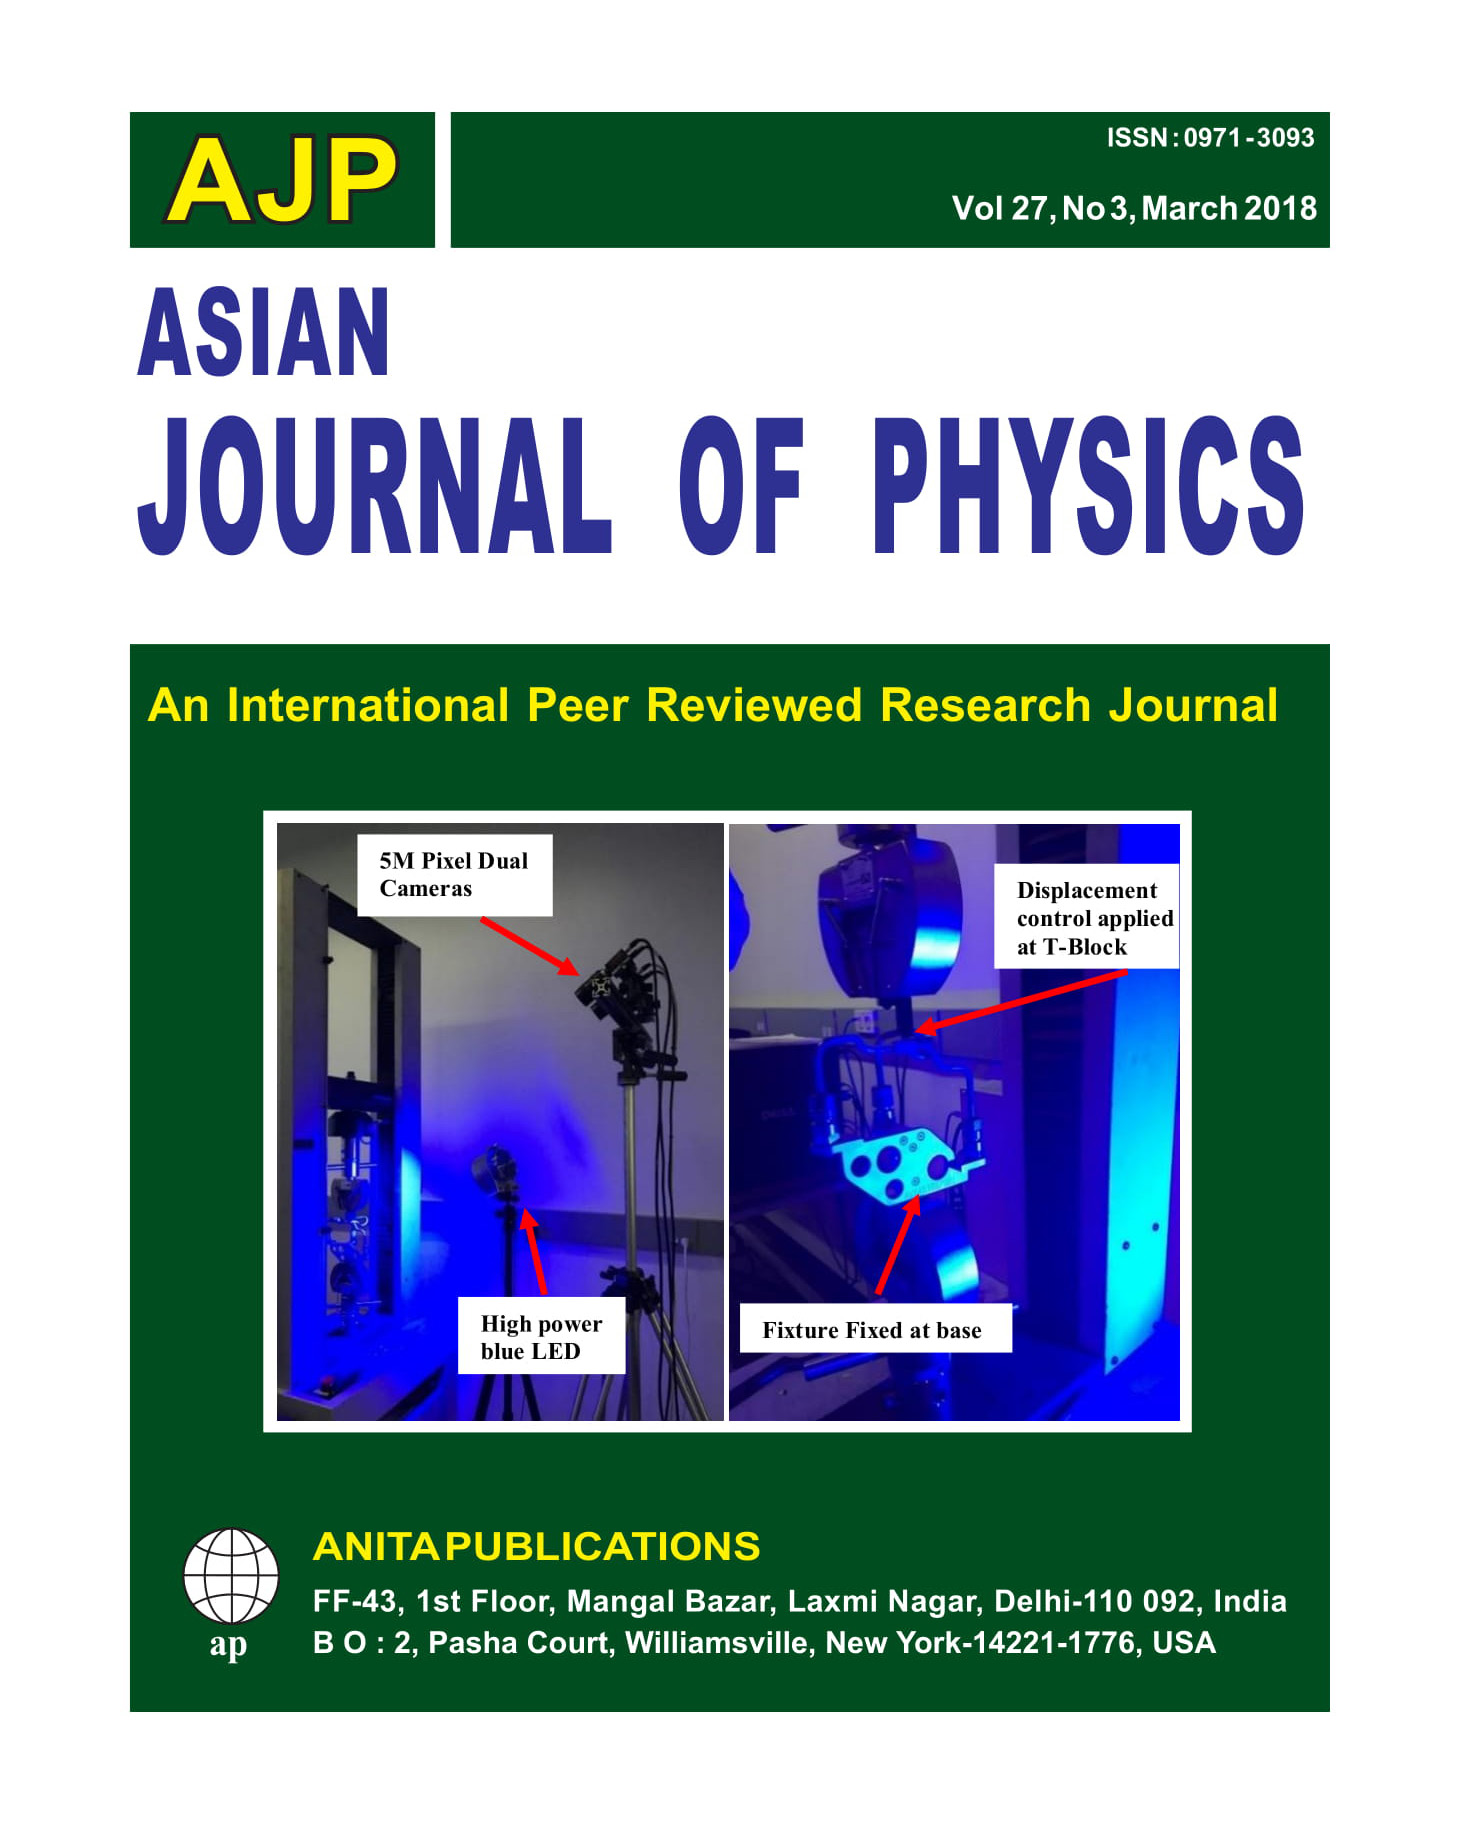 AJP Vol 27 No 3, 2018